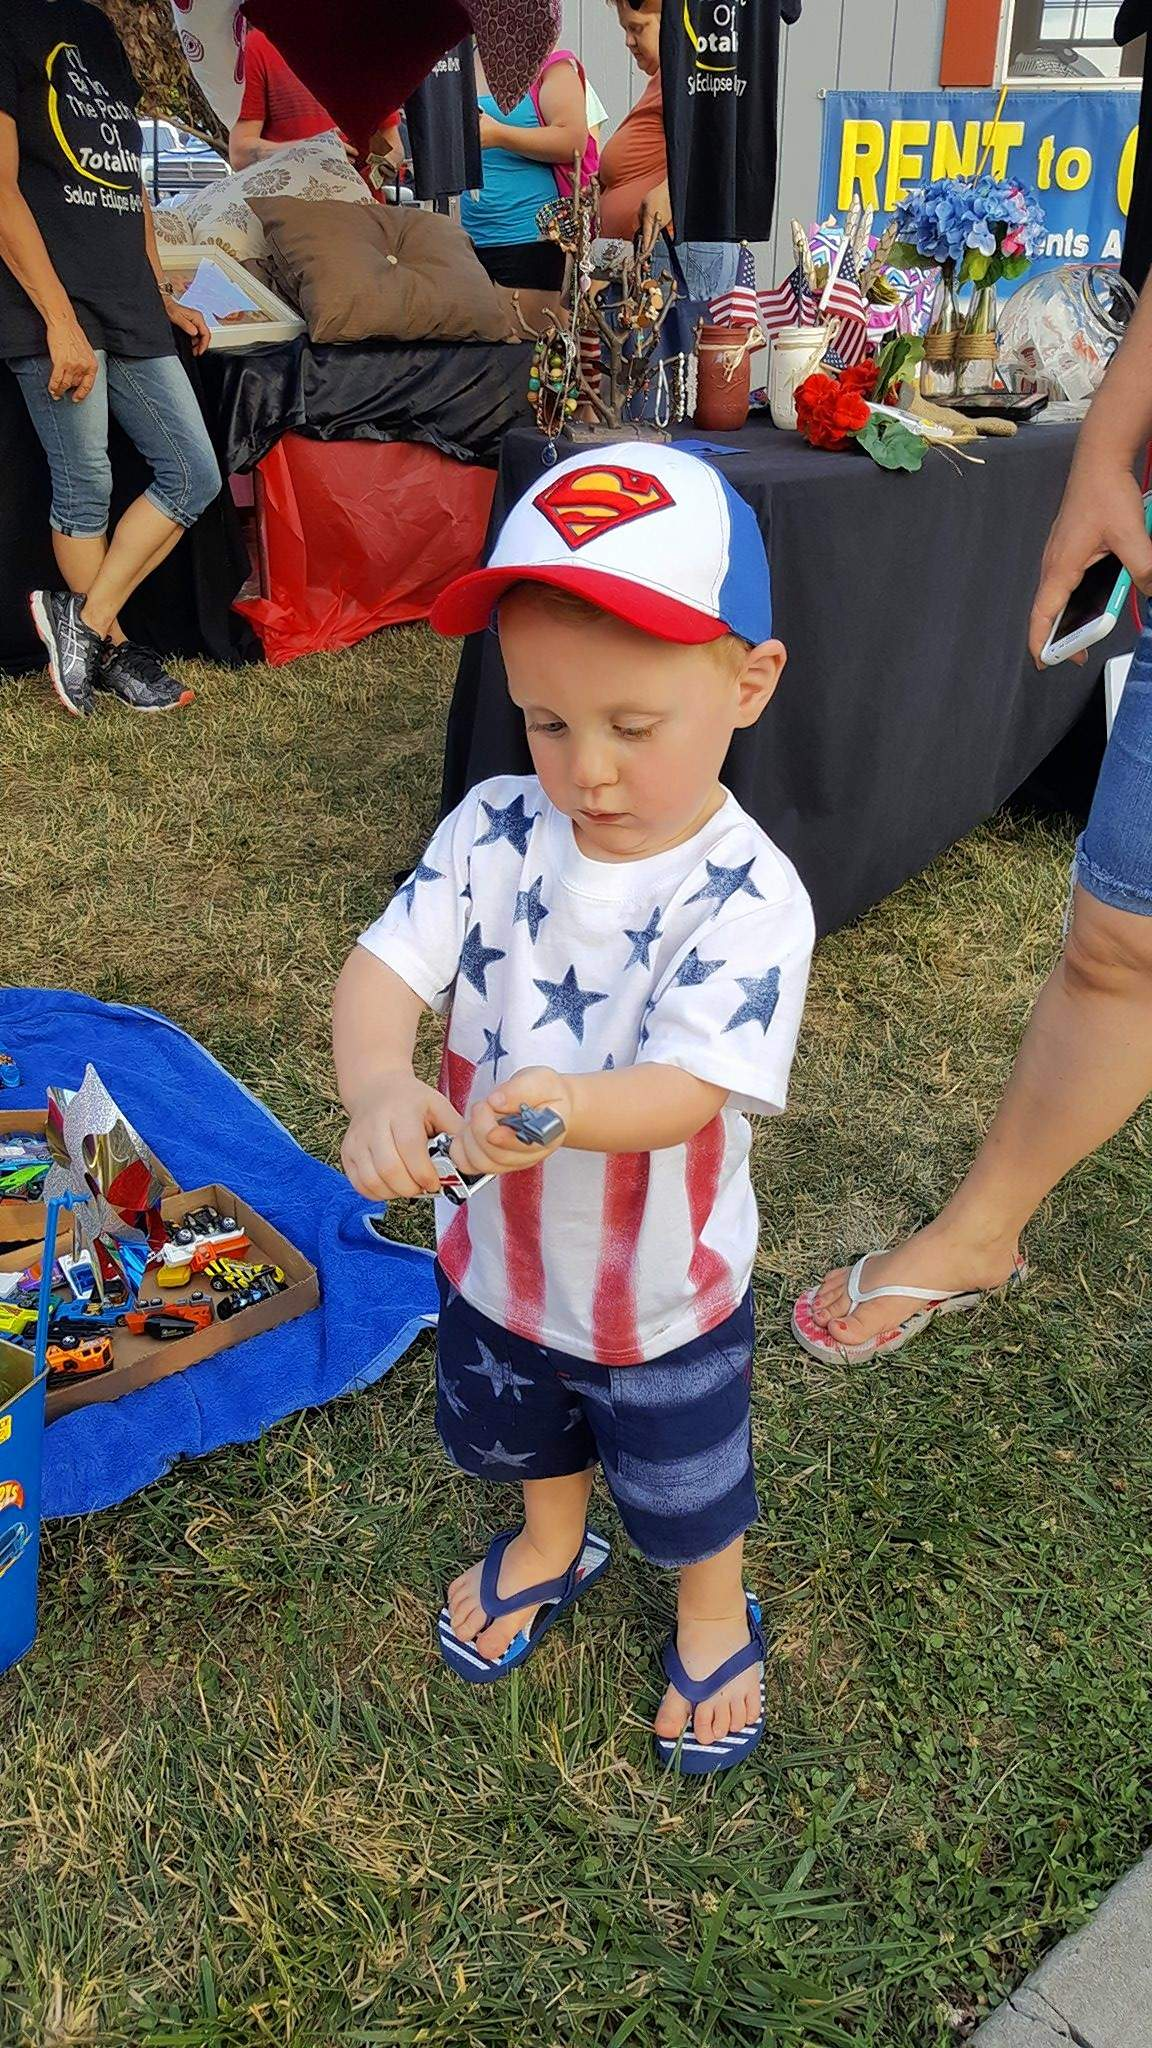 Ayden Arview, 2, of West Frankfort found a toy to his liking at a vendor booth as his parents, Mary and Loren, browsed the various booths prior to the fireworks show. There were several unique vendors including disc golf, a wood artisan and a booth featuring different 'rocket' launchers.